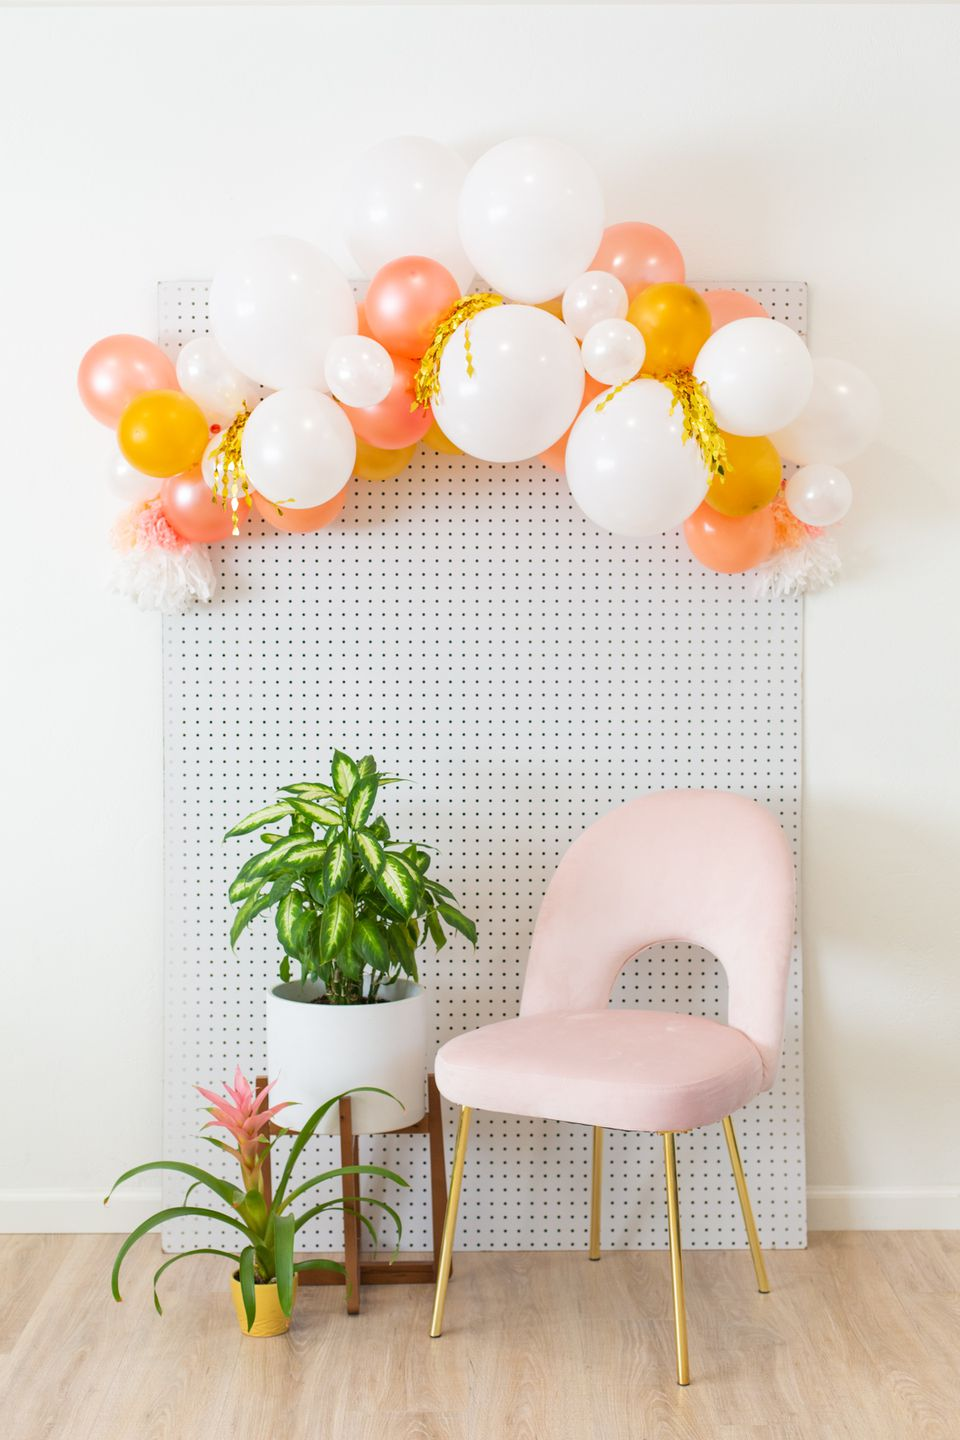 DIY balloon arch over a pink chair and by a plant in a mid-century modern planter